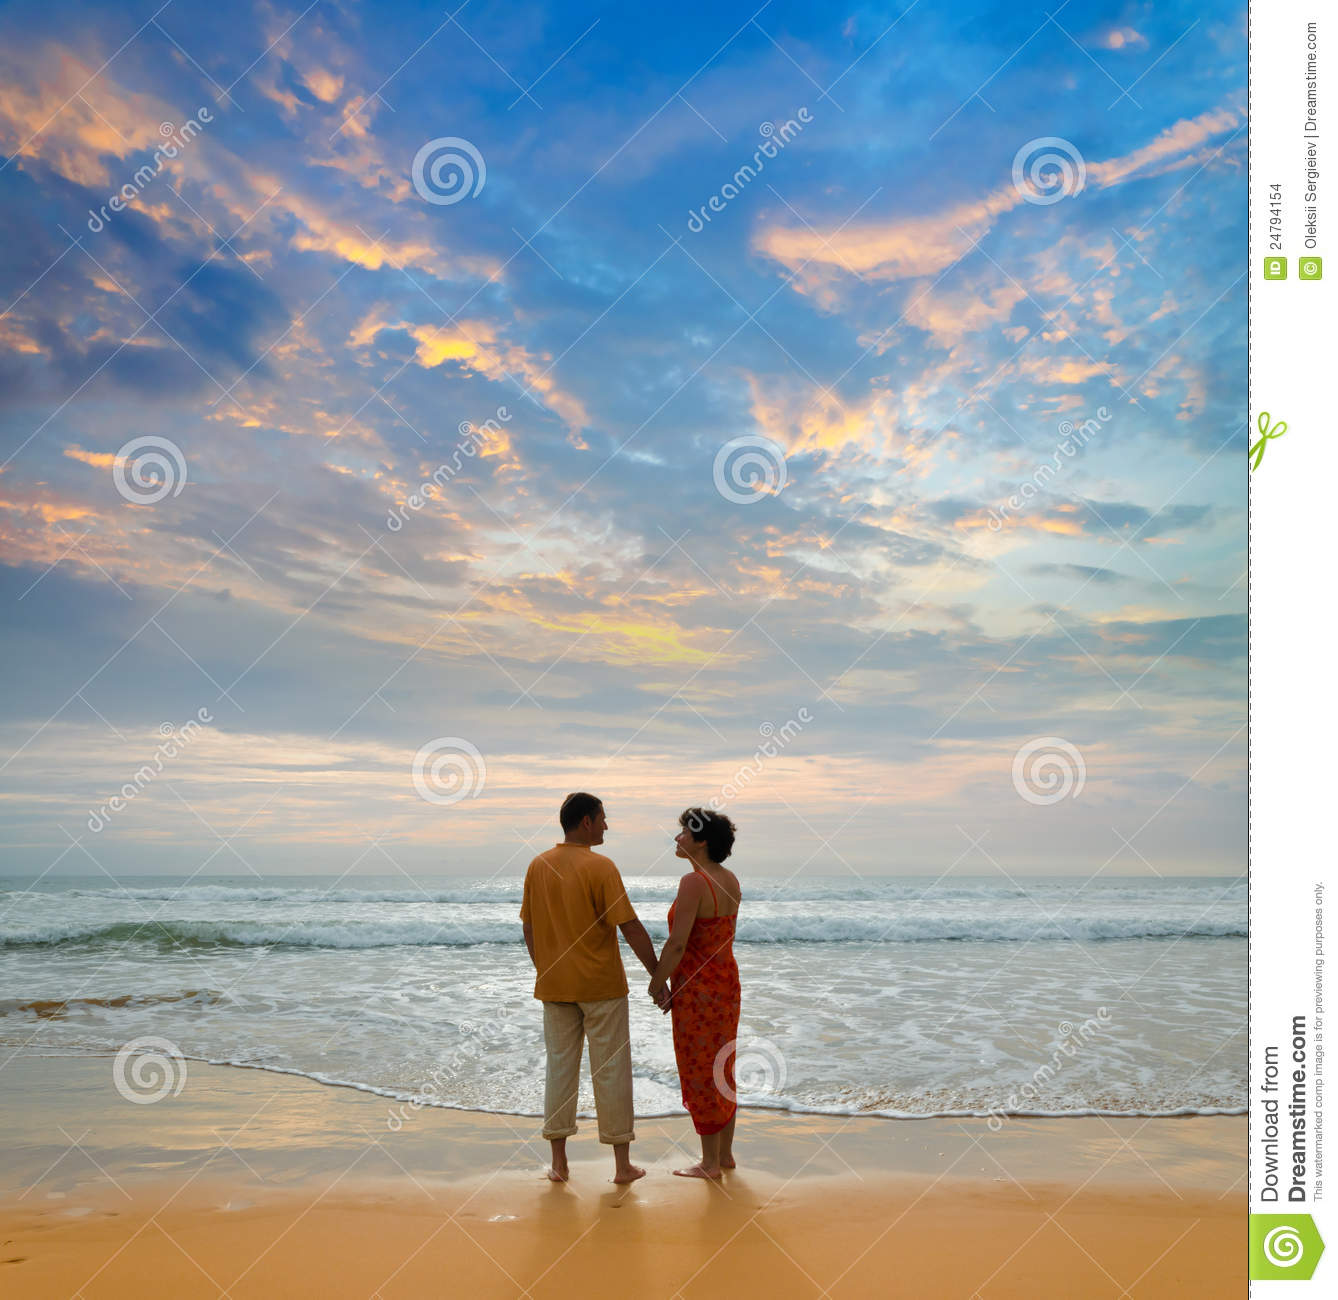 Couple At The Beach Stock Image Image Of Caucasian: Couple On The Beach At Sunset Stock Photo